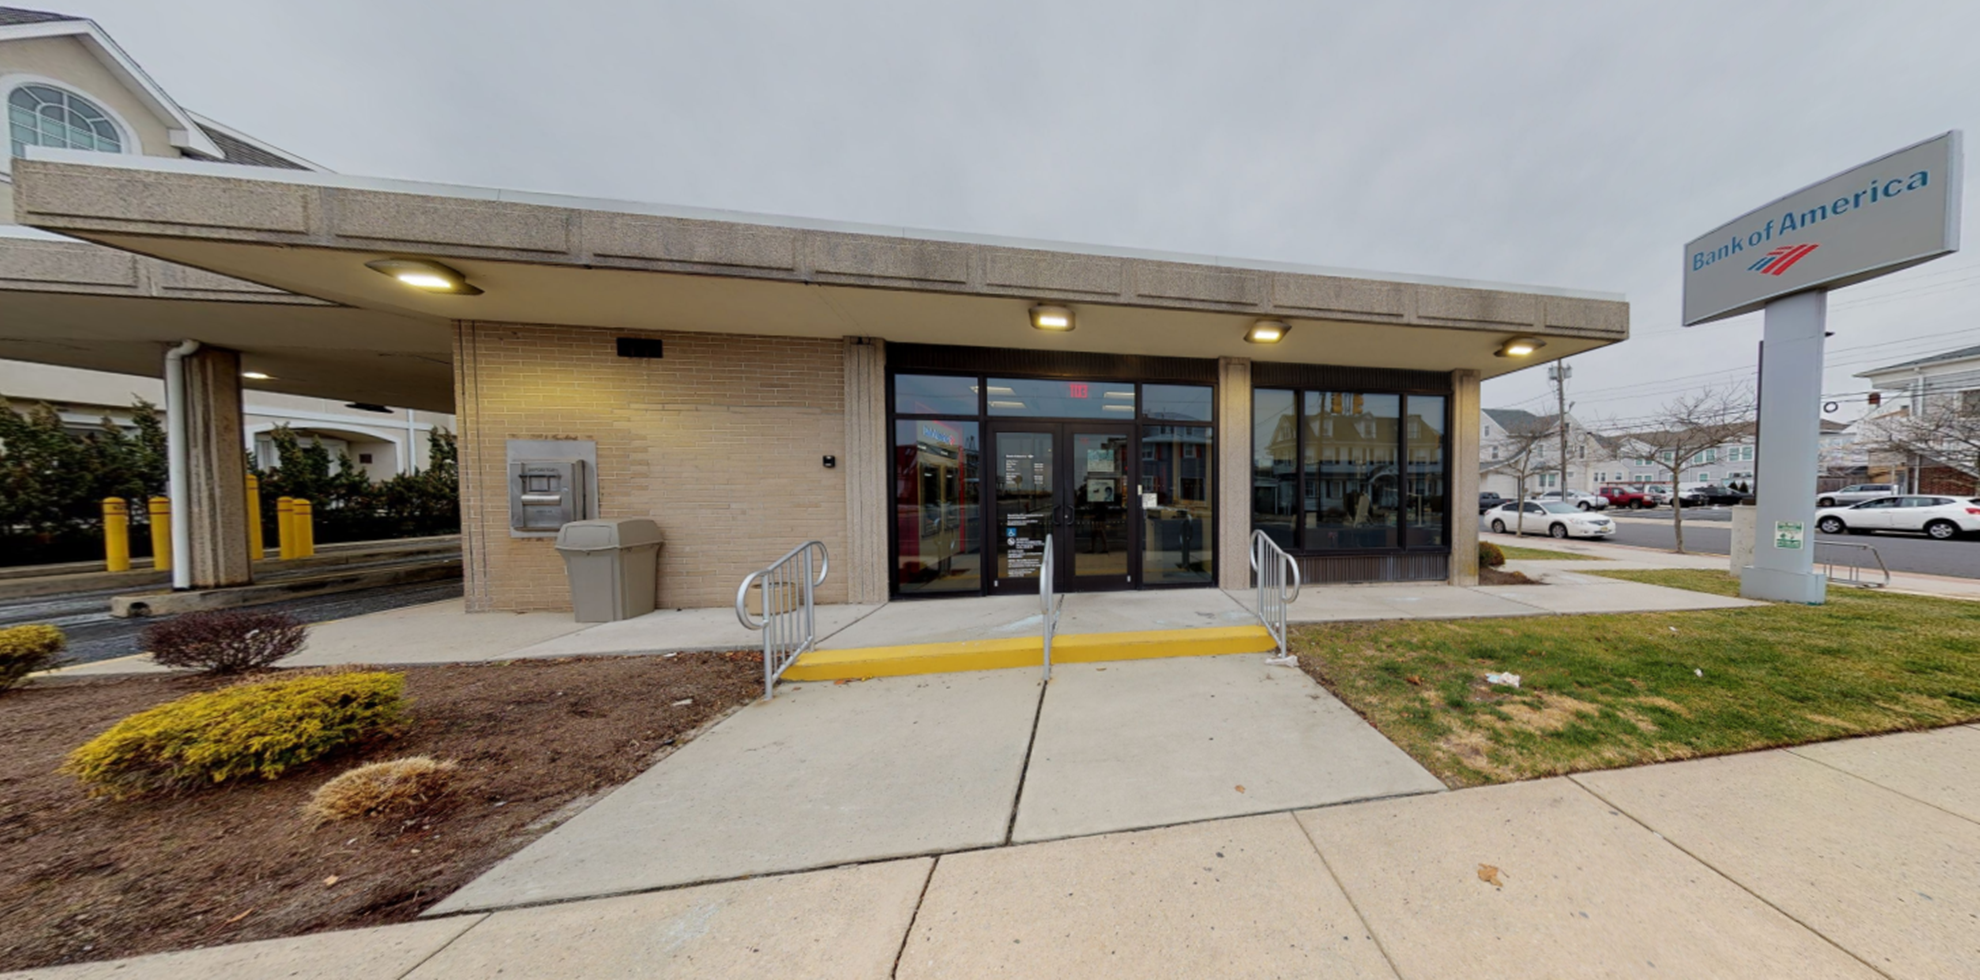 Bank of America financial center with walk-up ATM | 20 S Essex Ave, Margate City, NJ 08402